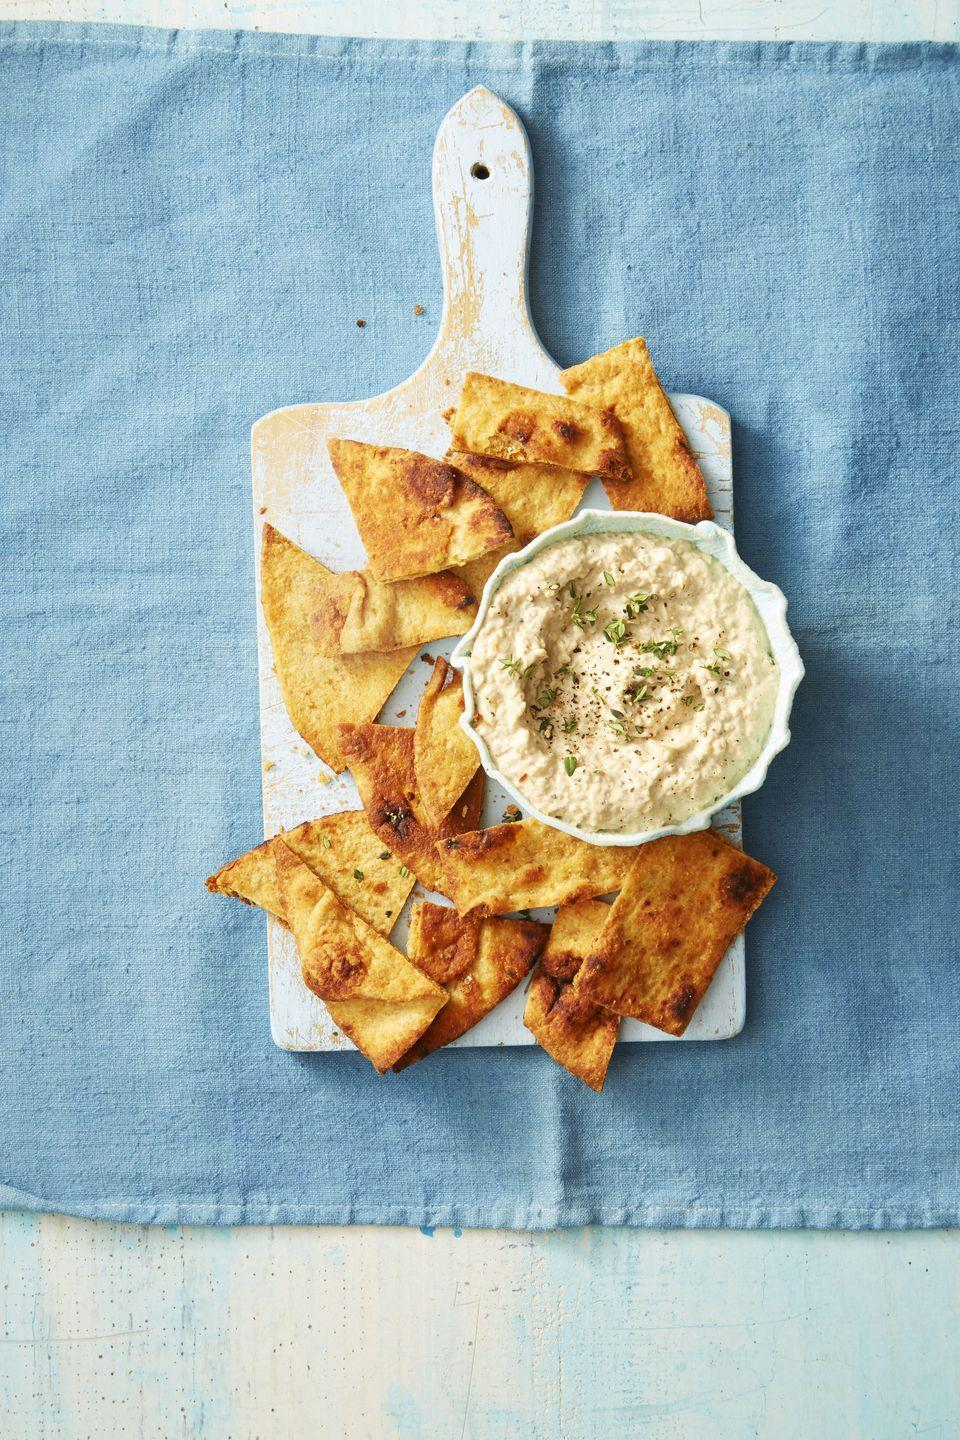 """<p>This classic party starter gets a smoky kick from a few minutes on the BBQ.</p><p><em><a href=""""https://www.goodhousekeeping.com/food-recipes/a38842/grilled-onion-dip-recipe/"""" rel=""""nofollow noopener"""" target=""""_blank"""" data-ylk=""""slk:Get the recipe for Grilled Onion Dip »"""" class=""""link rapid-noclick-resp"""">Get the recipe for Grilled Onion Dip »</a></em></p>"""